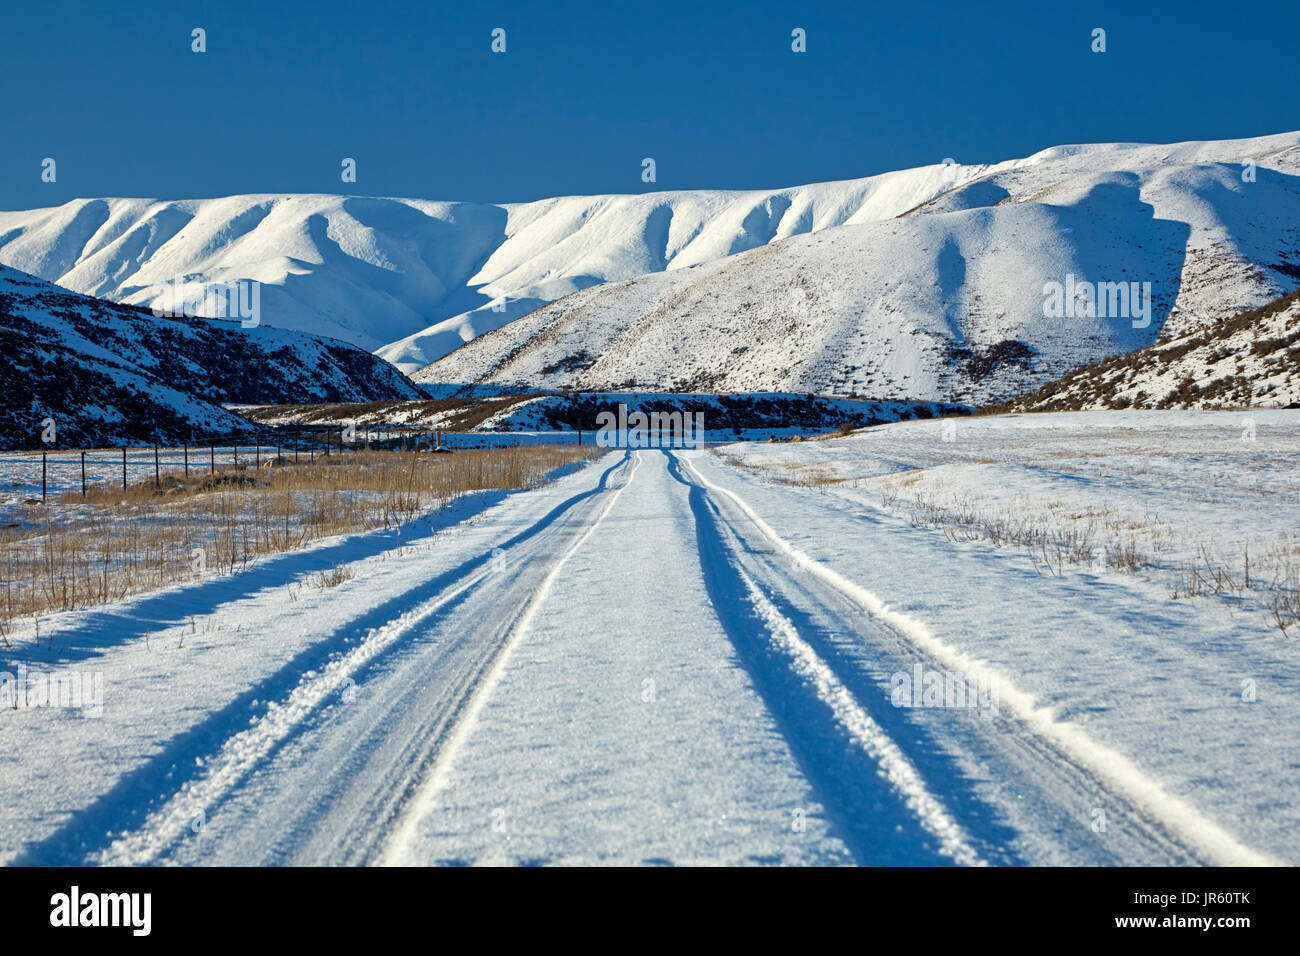 Hawkdun Range and snowy track to Falls Dam, Maniototo, Central Otago, South Island, New Zealand - Stock Image